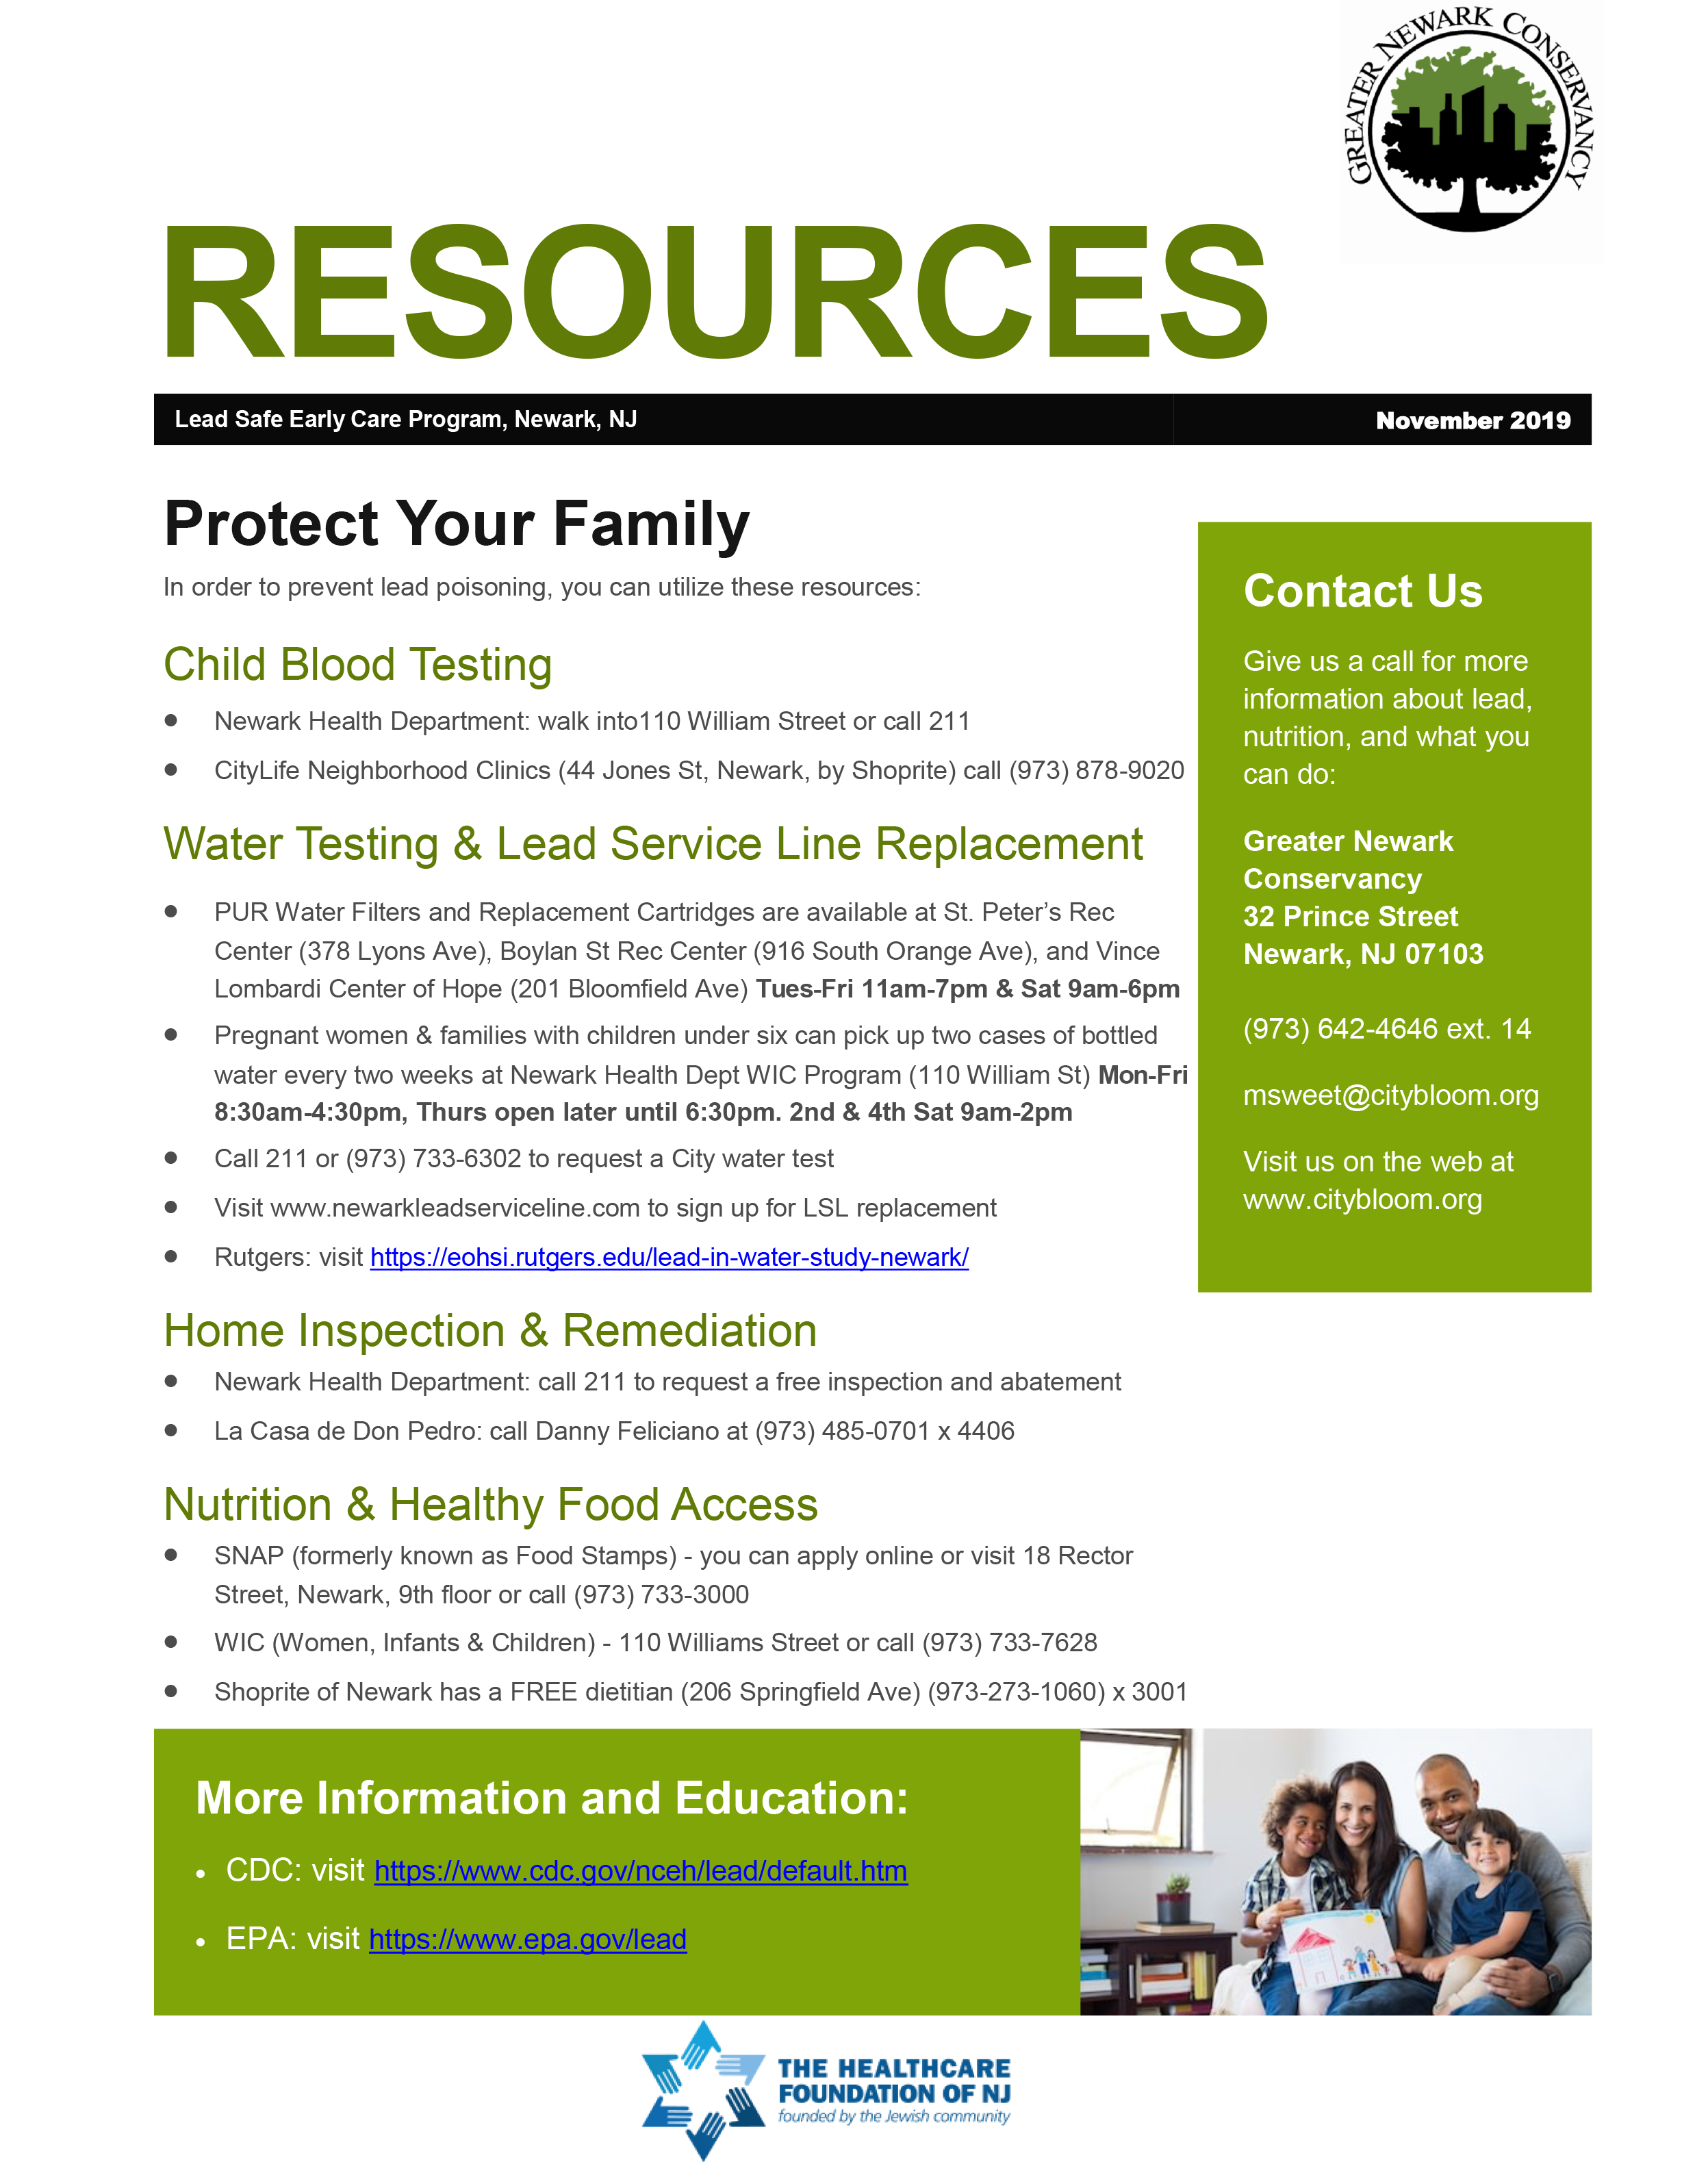 Resources for Lead